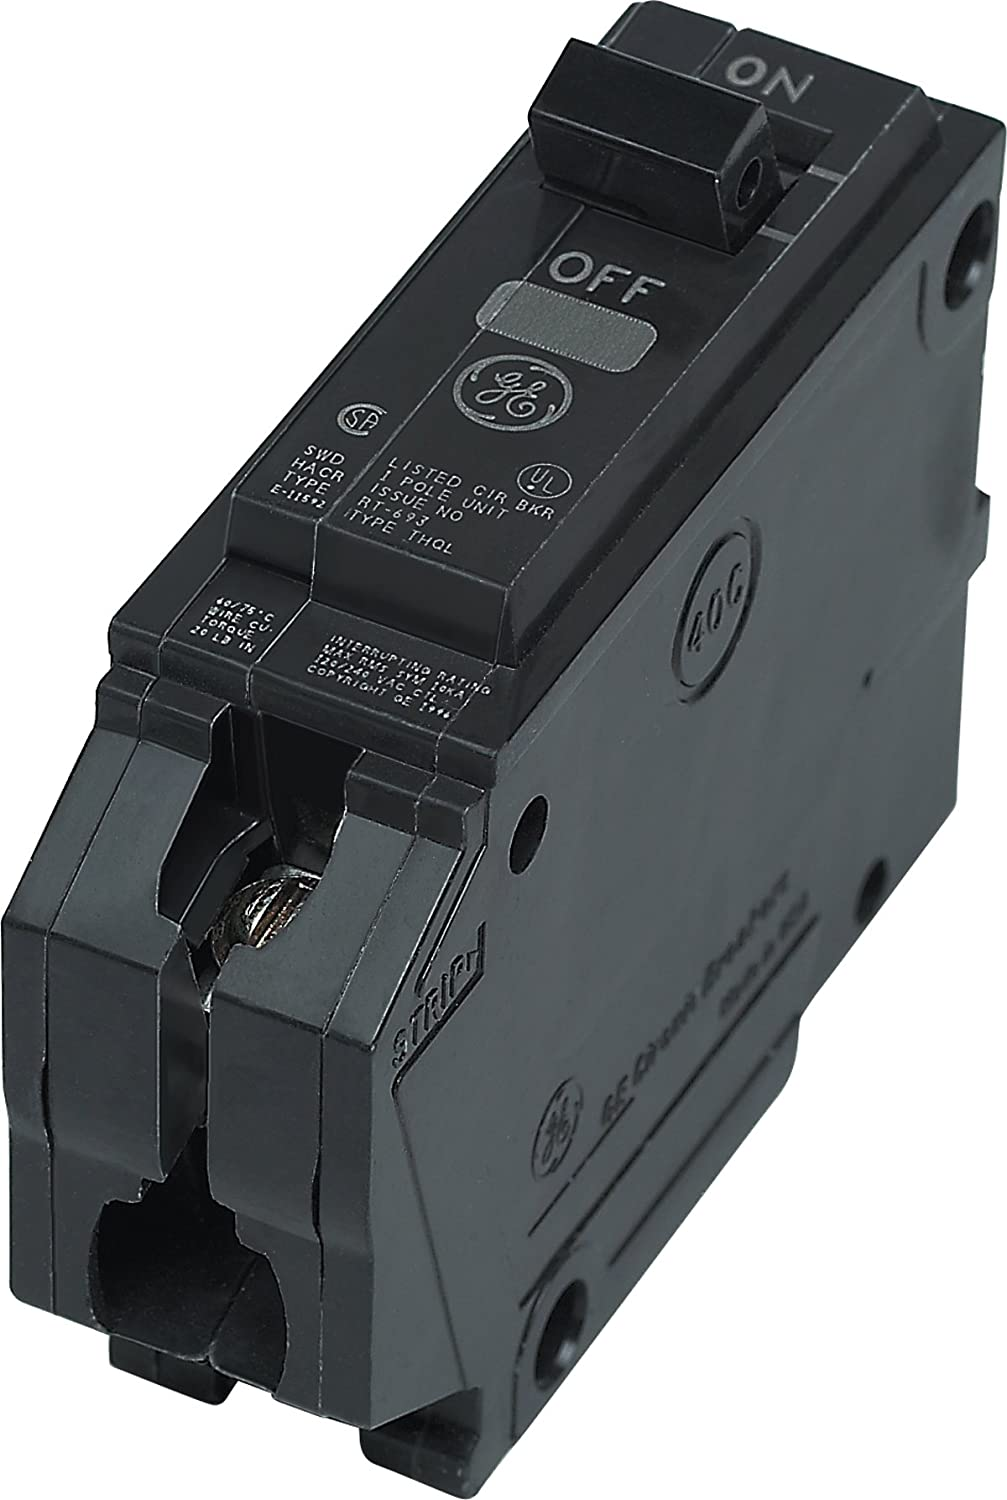 Connecticut Electric General THQP120 1 Pole 20 Amp Thin Series Circuit Breaker